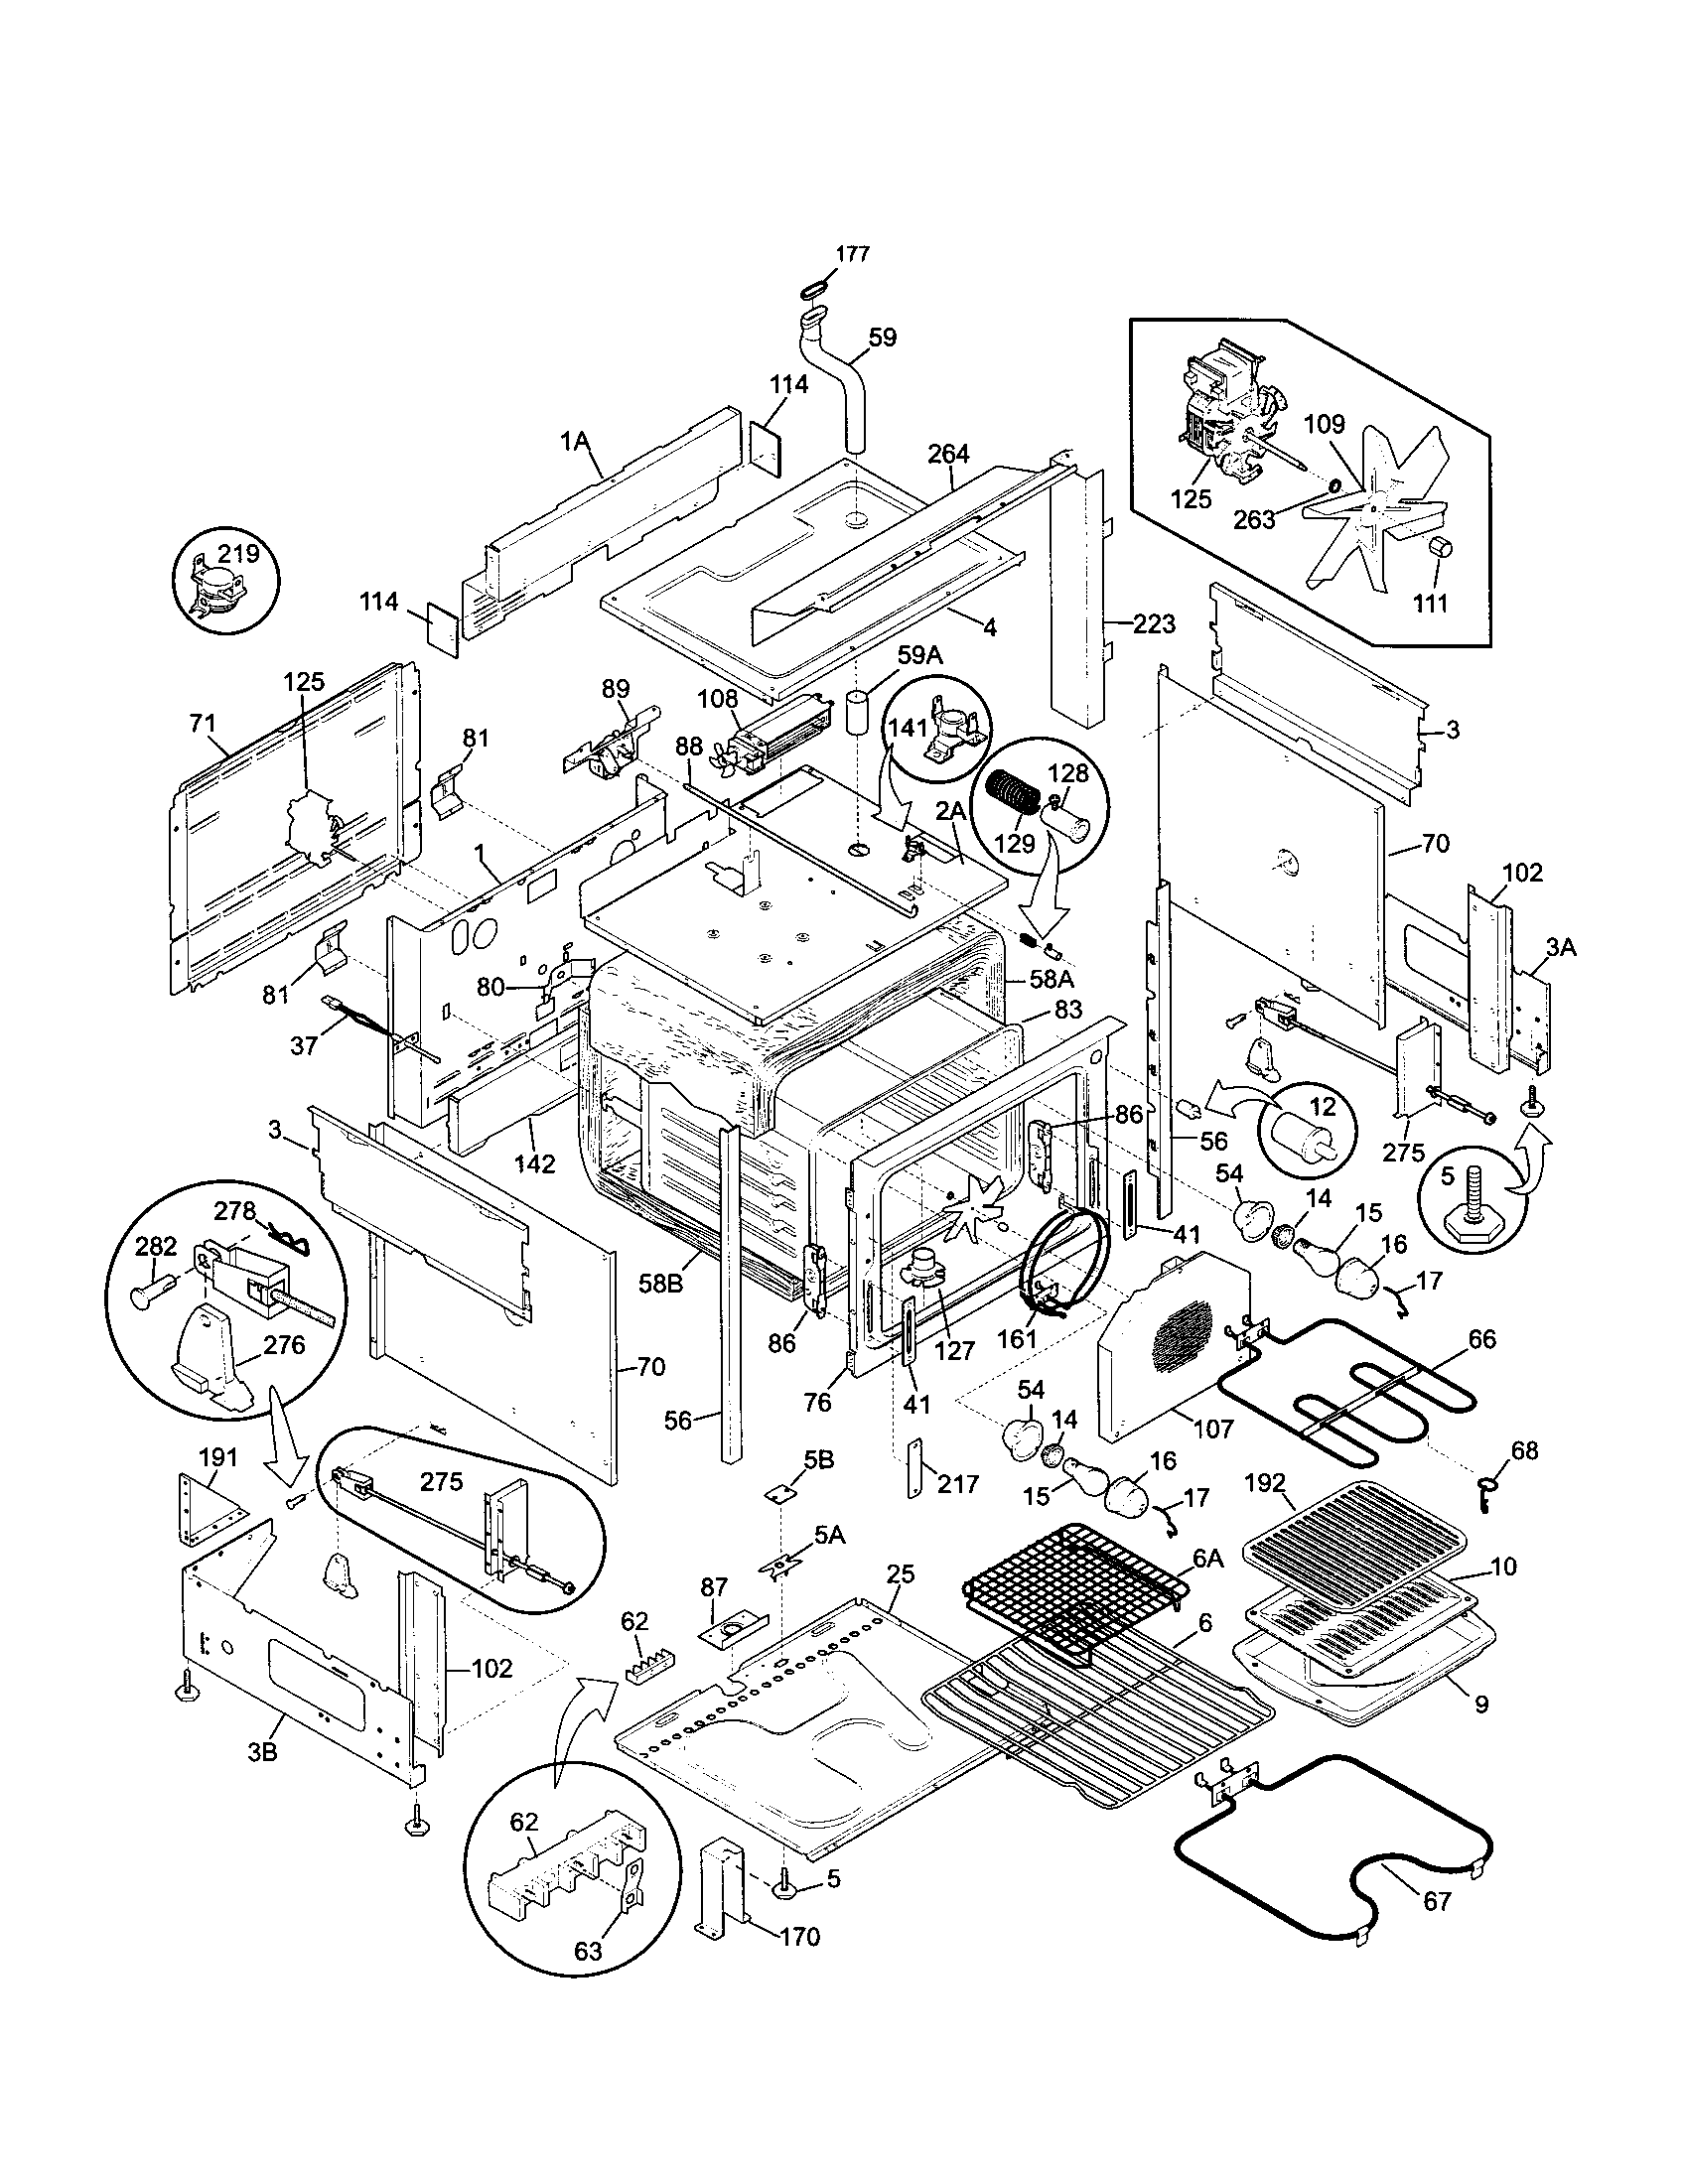 79046813992 elite dual fuel slide-in range body parts diagram